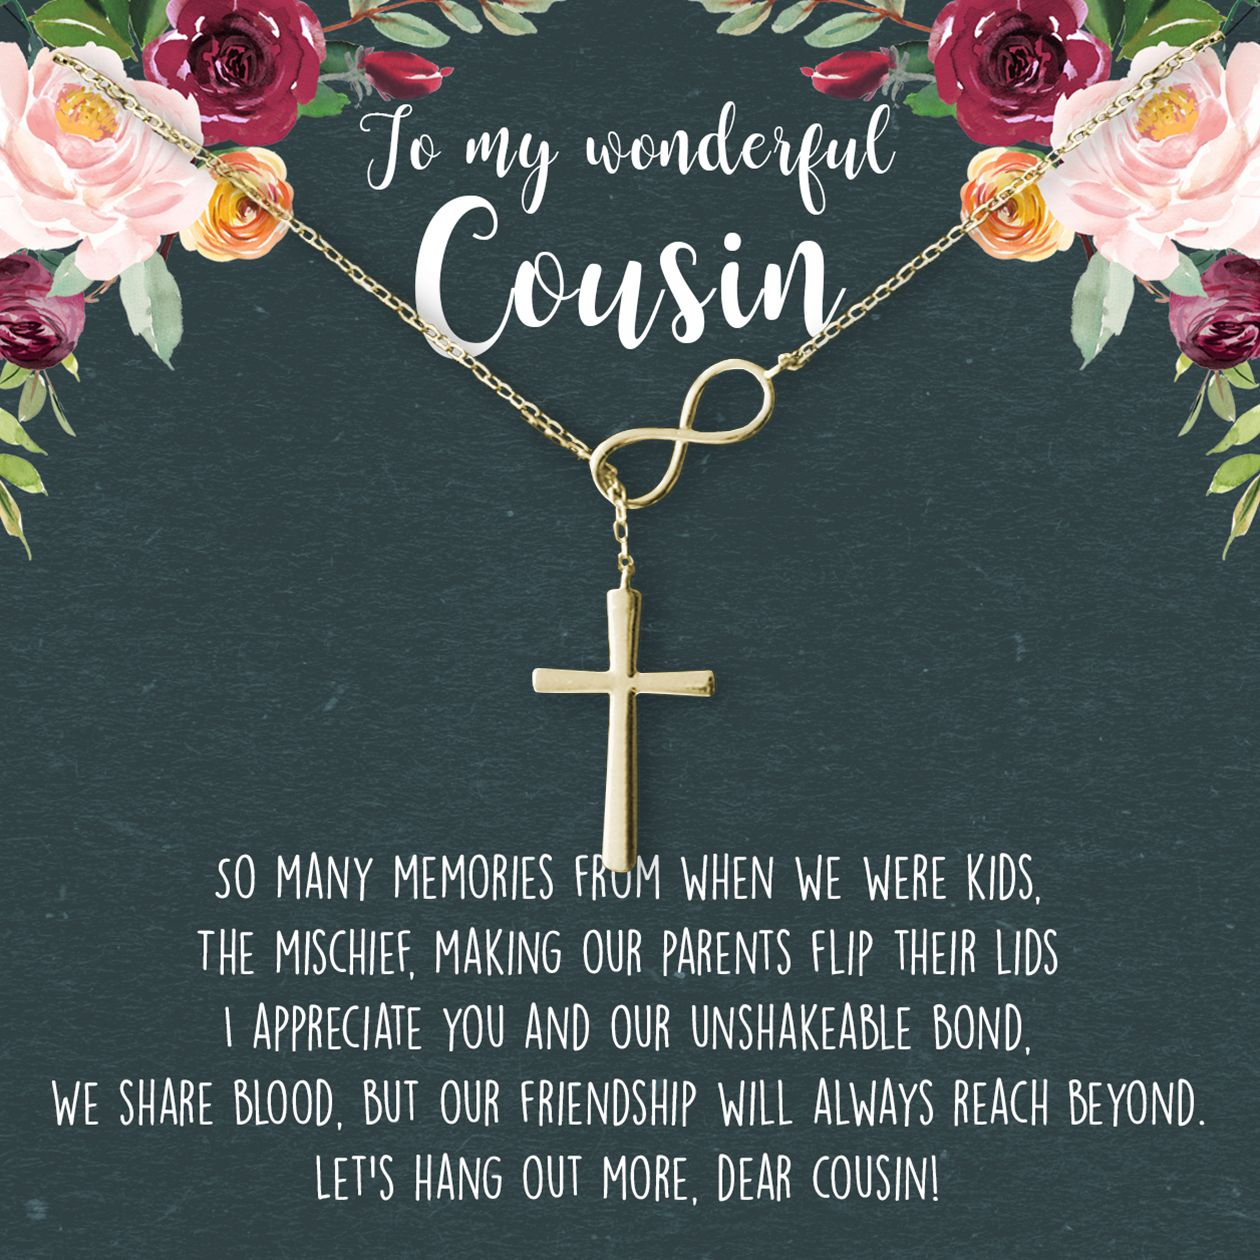 Cousins necklace mother in law gifts in law gifts